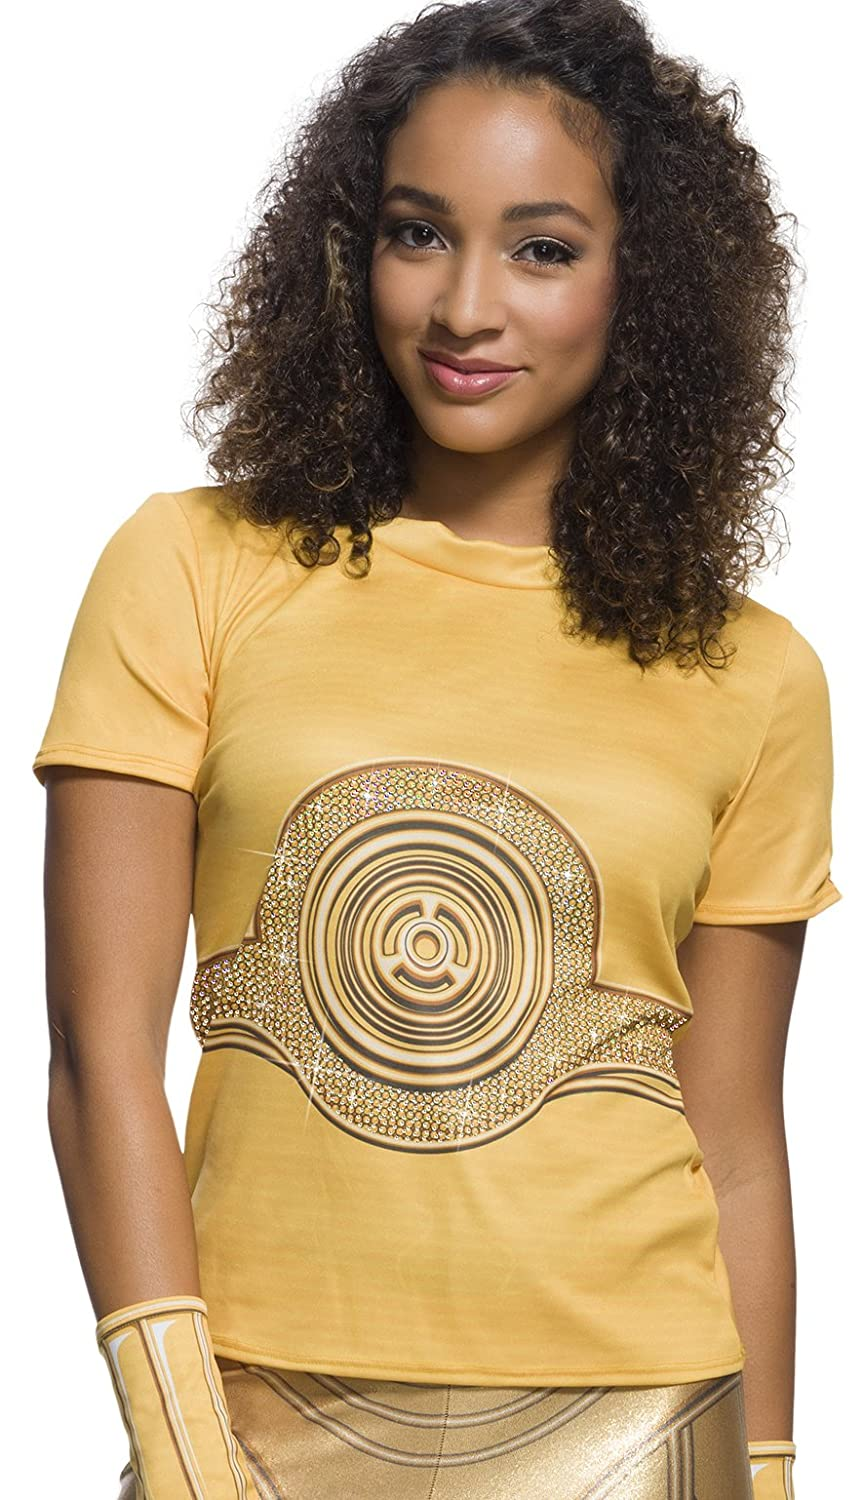 Rubie's Adult Star Wars C-3PO Rhinestone Costume T-shirt Rubies Costumes - Apparel 820594